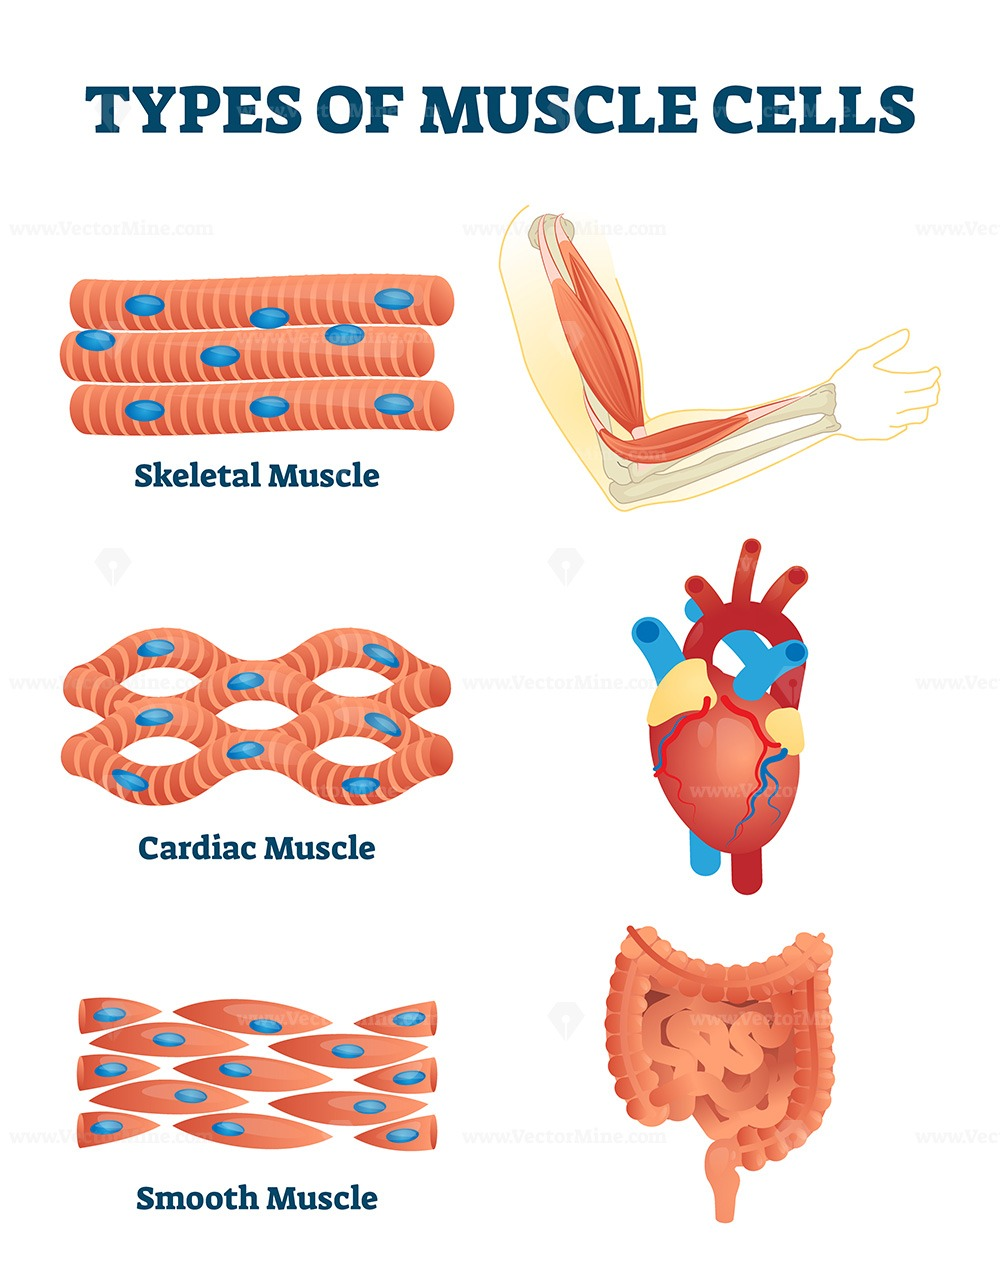 Types of muscle cells vector illustration